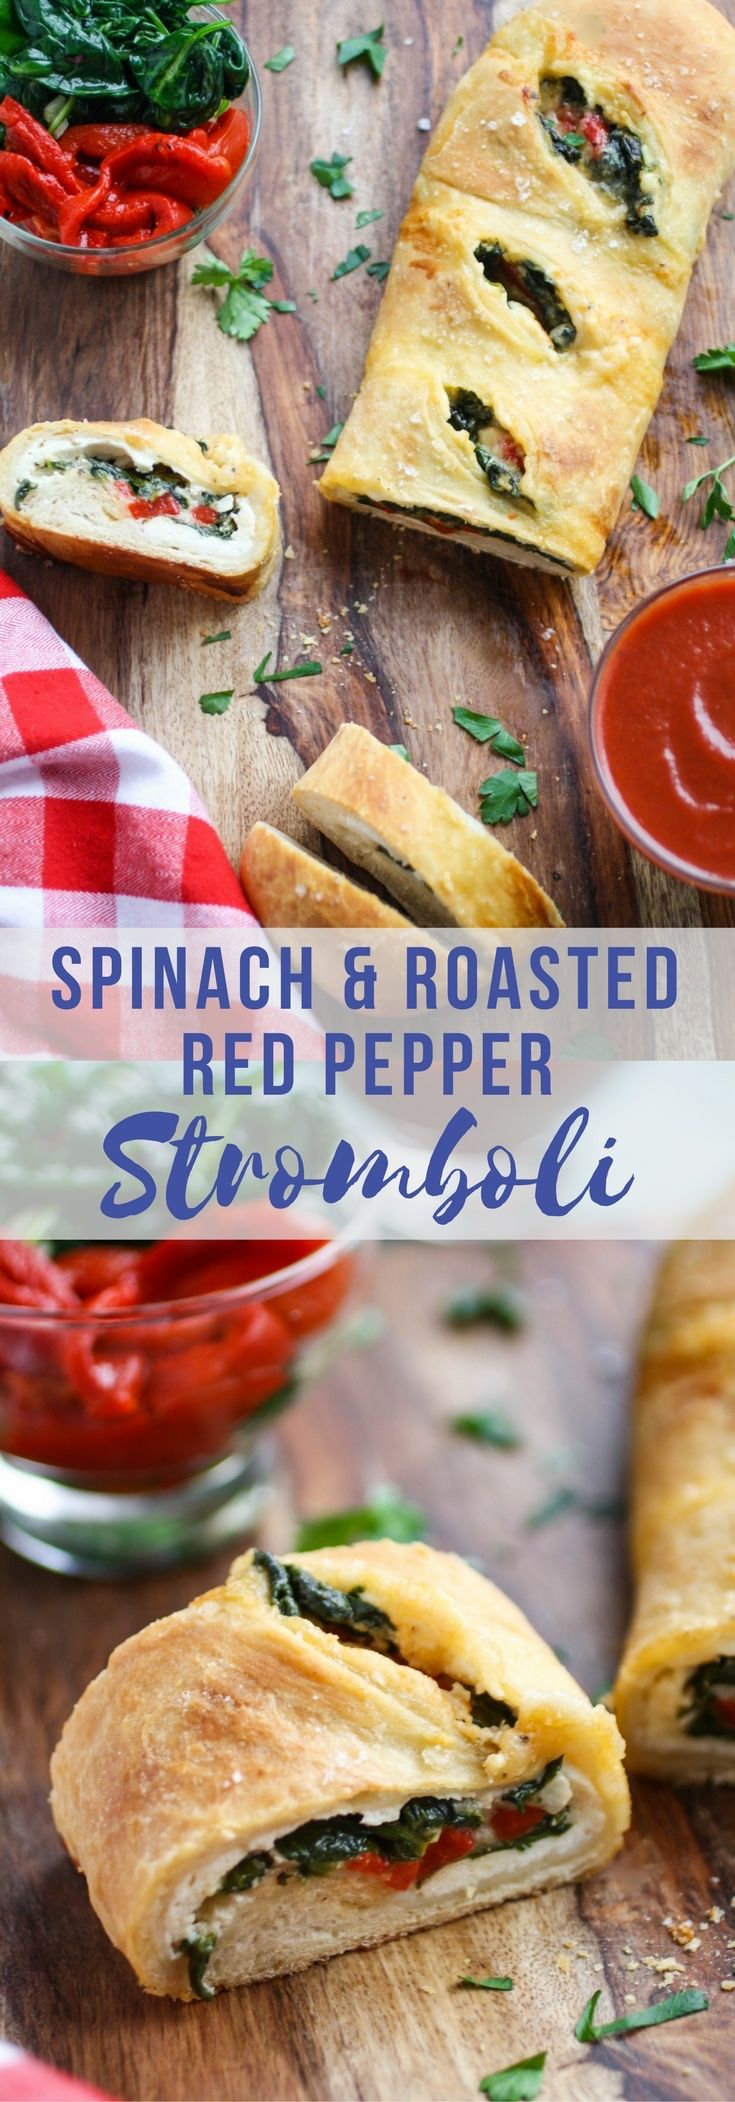 Spinach and Roasted Red Pepper Stromboli is a delicious dish, similar to pizza -- what a treat! Stromboli is perfect to serve at any gathering, or even on movie night!